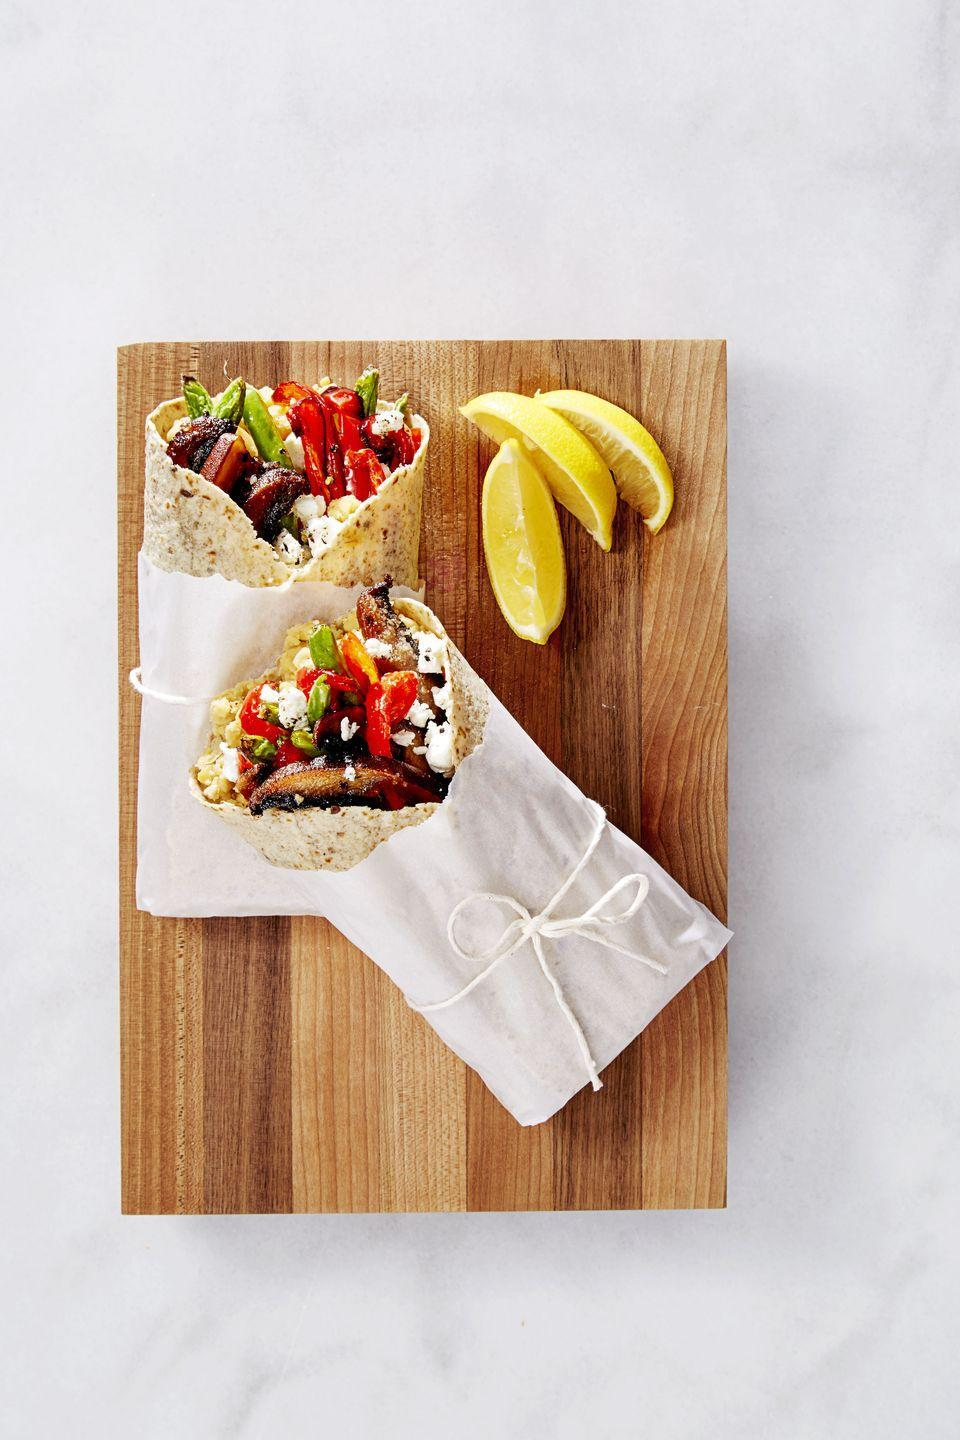 """<p>These hearty, fiber-filled wraps may convince you to go meatless every night of the week. </p><p><em><a href=""""https://www.goodhousekeeping.com/food-recipes/easy/a36678/veggie-wraps-with-goat-cheese/"""" rel=""""nofollow noopener"""" target=""""_blank"""" data-ylk=""""slk:Get the recipe for Veggie Wraps with Goat Cheese »"""" class=""""link rapid-noclick-resp"""">Get the recipe for Veggie Wraps with Goat Cheese »</a></em> </p>"""